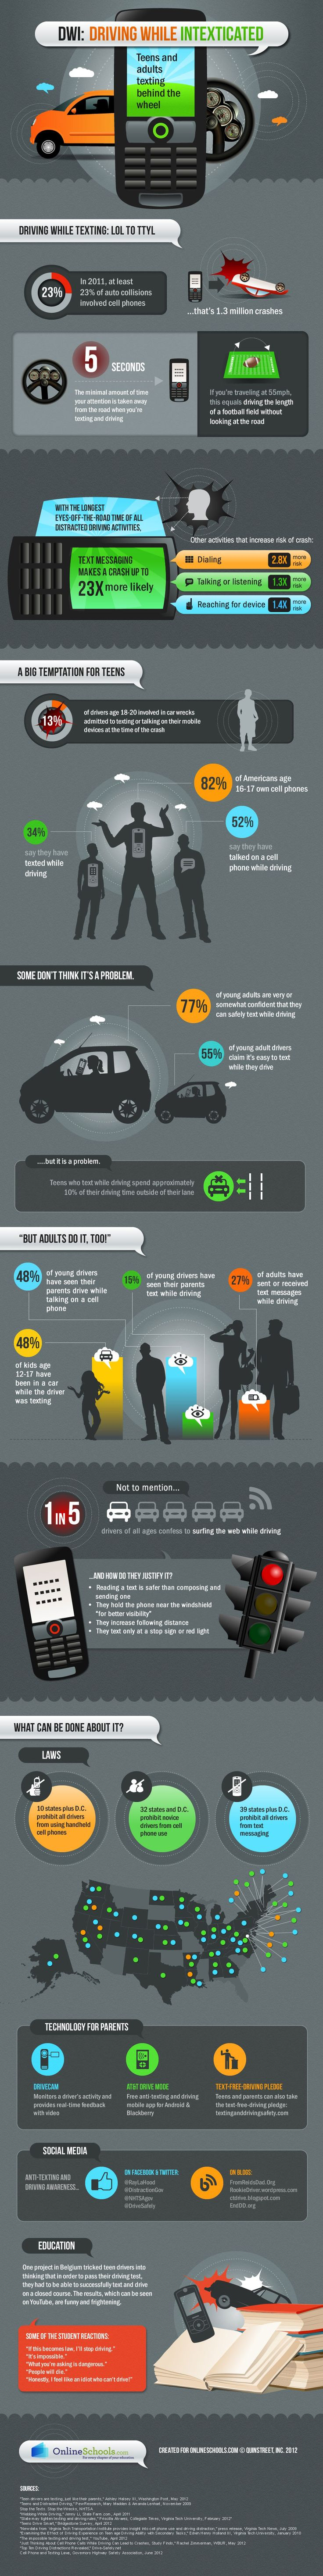 The driving while intexicated infographic!